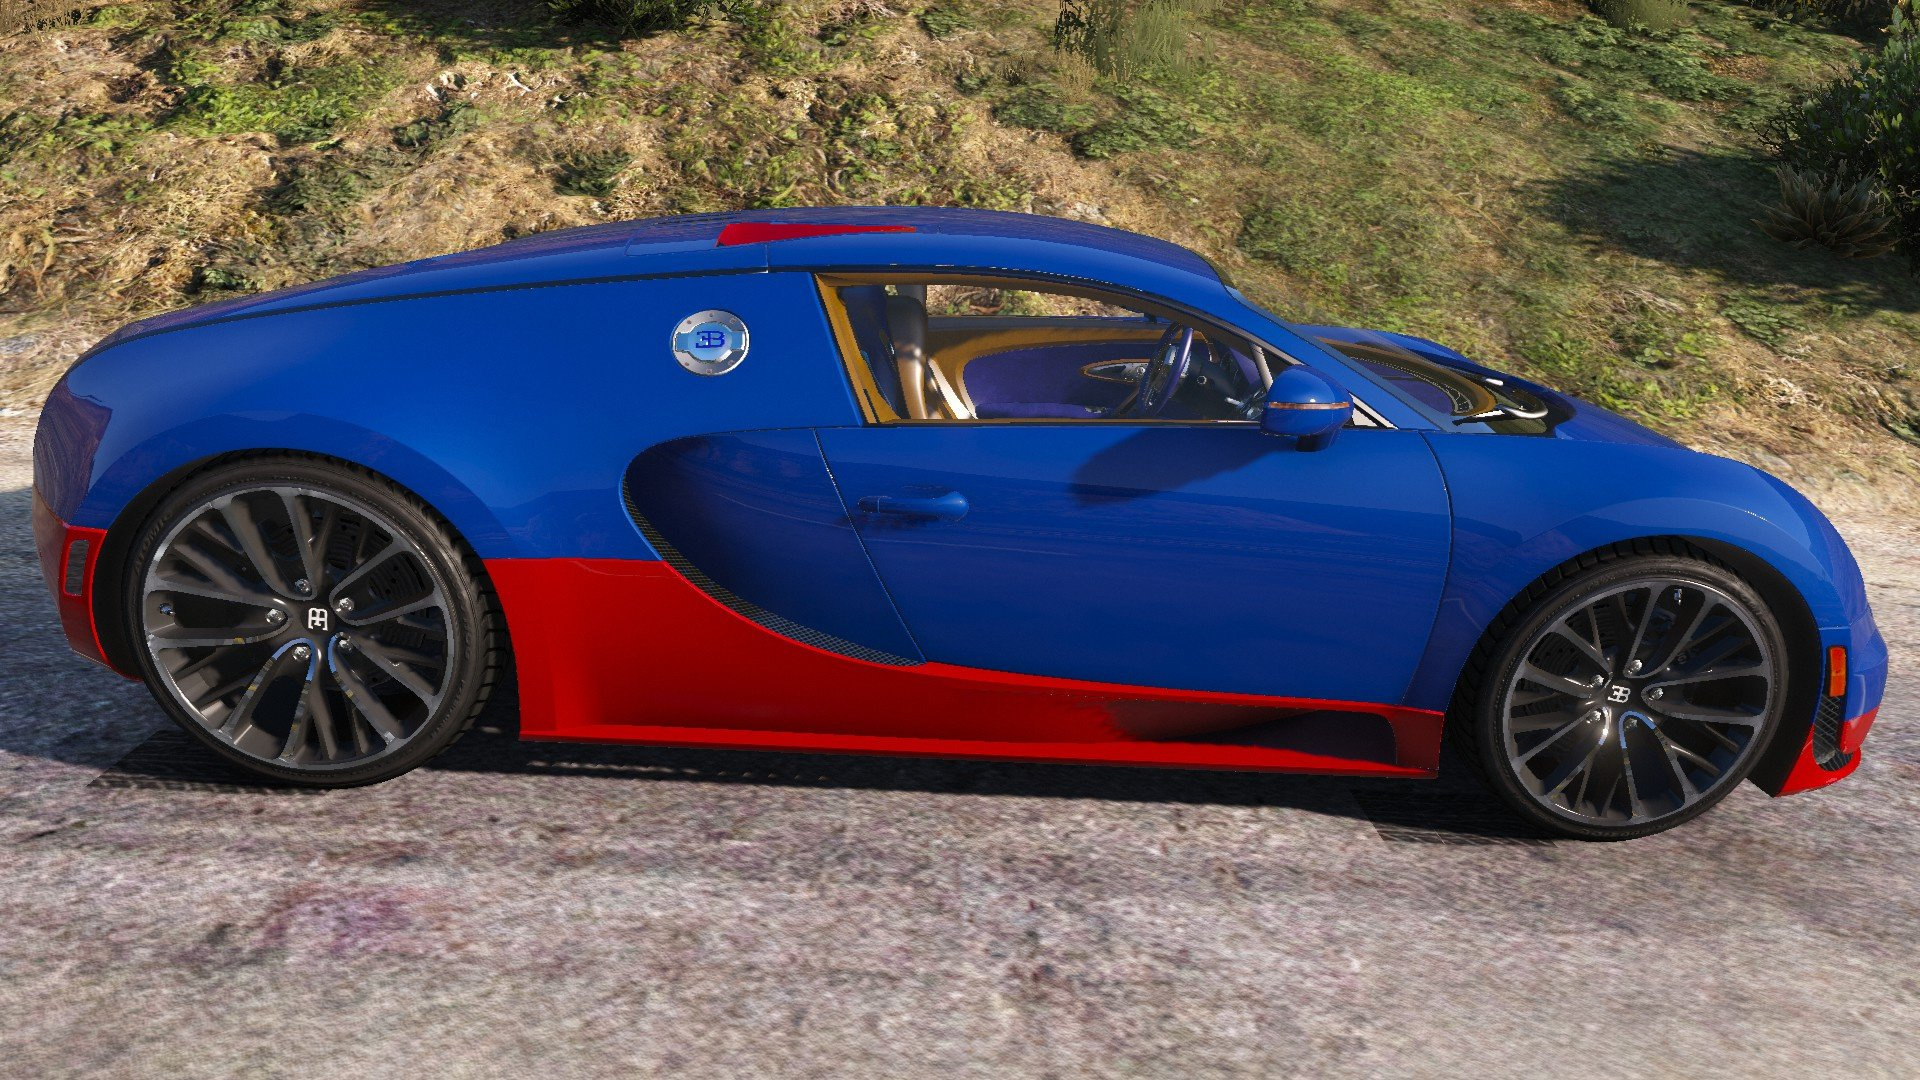 bugatti veyron gta 5 location on map gta 5 bugatti veyron fastest car location on map million. Black Bedroom Furniture Sets. Home Design Ideas